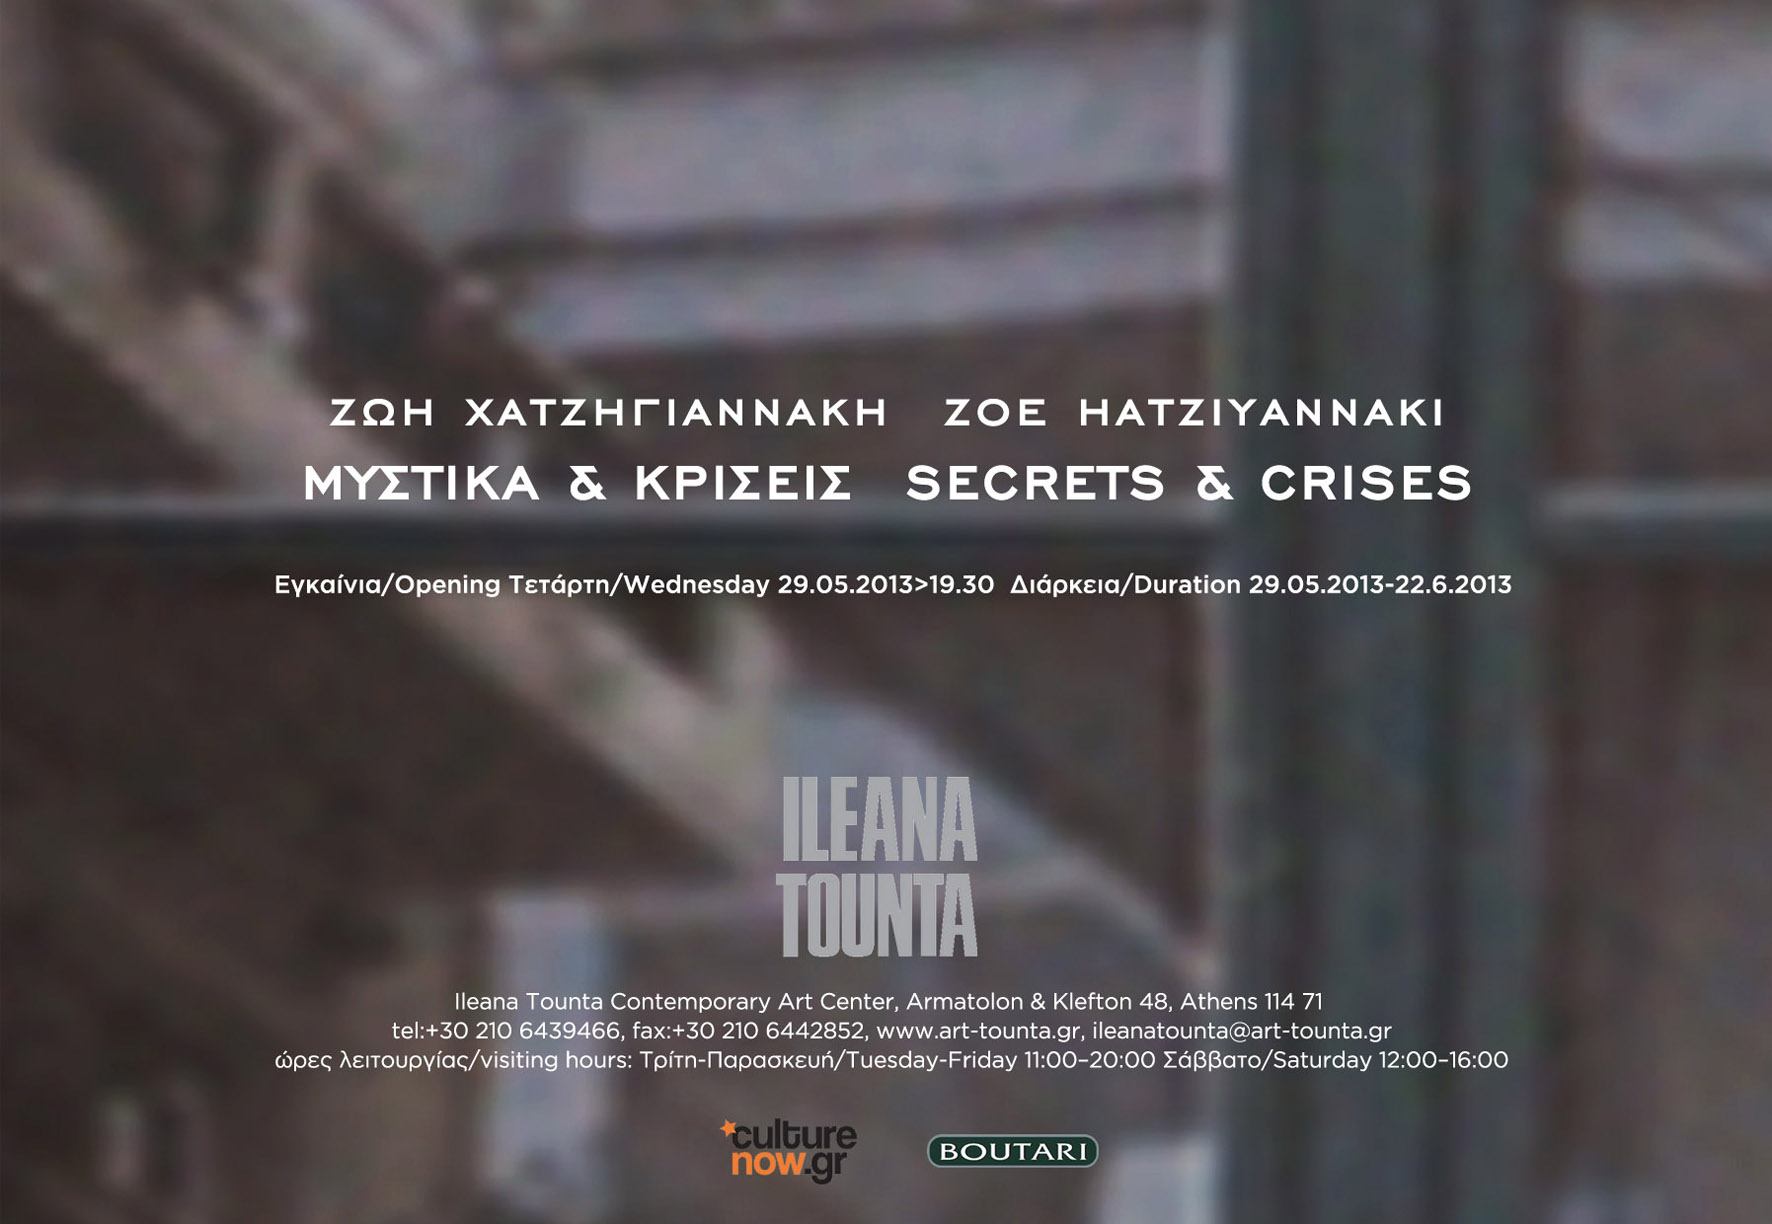 Zoe Hatziyiannaki Invitation «Secrets and Crises» Ileana Tounta Contemporary Art Center Exhibition